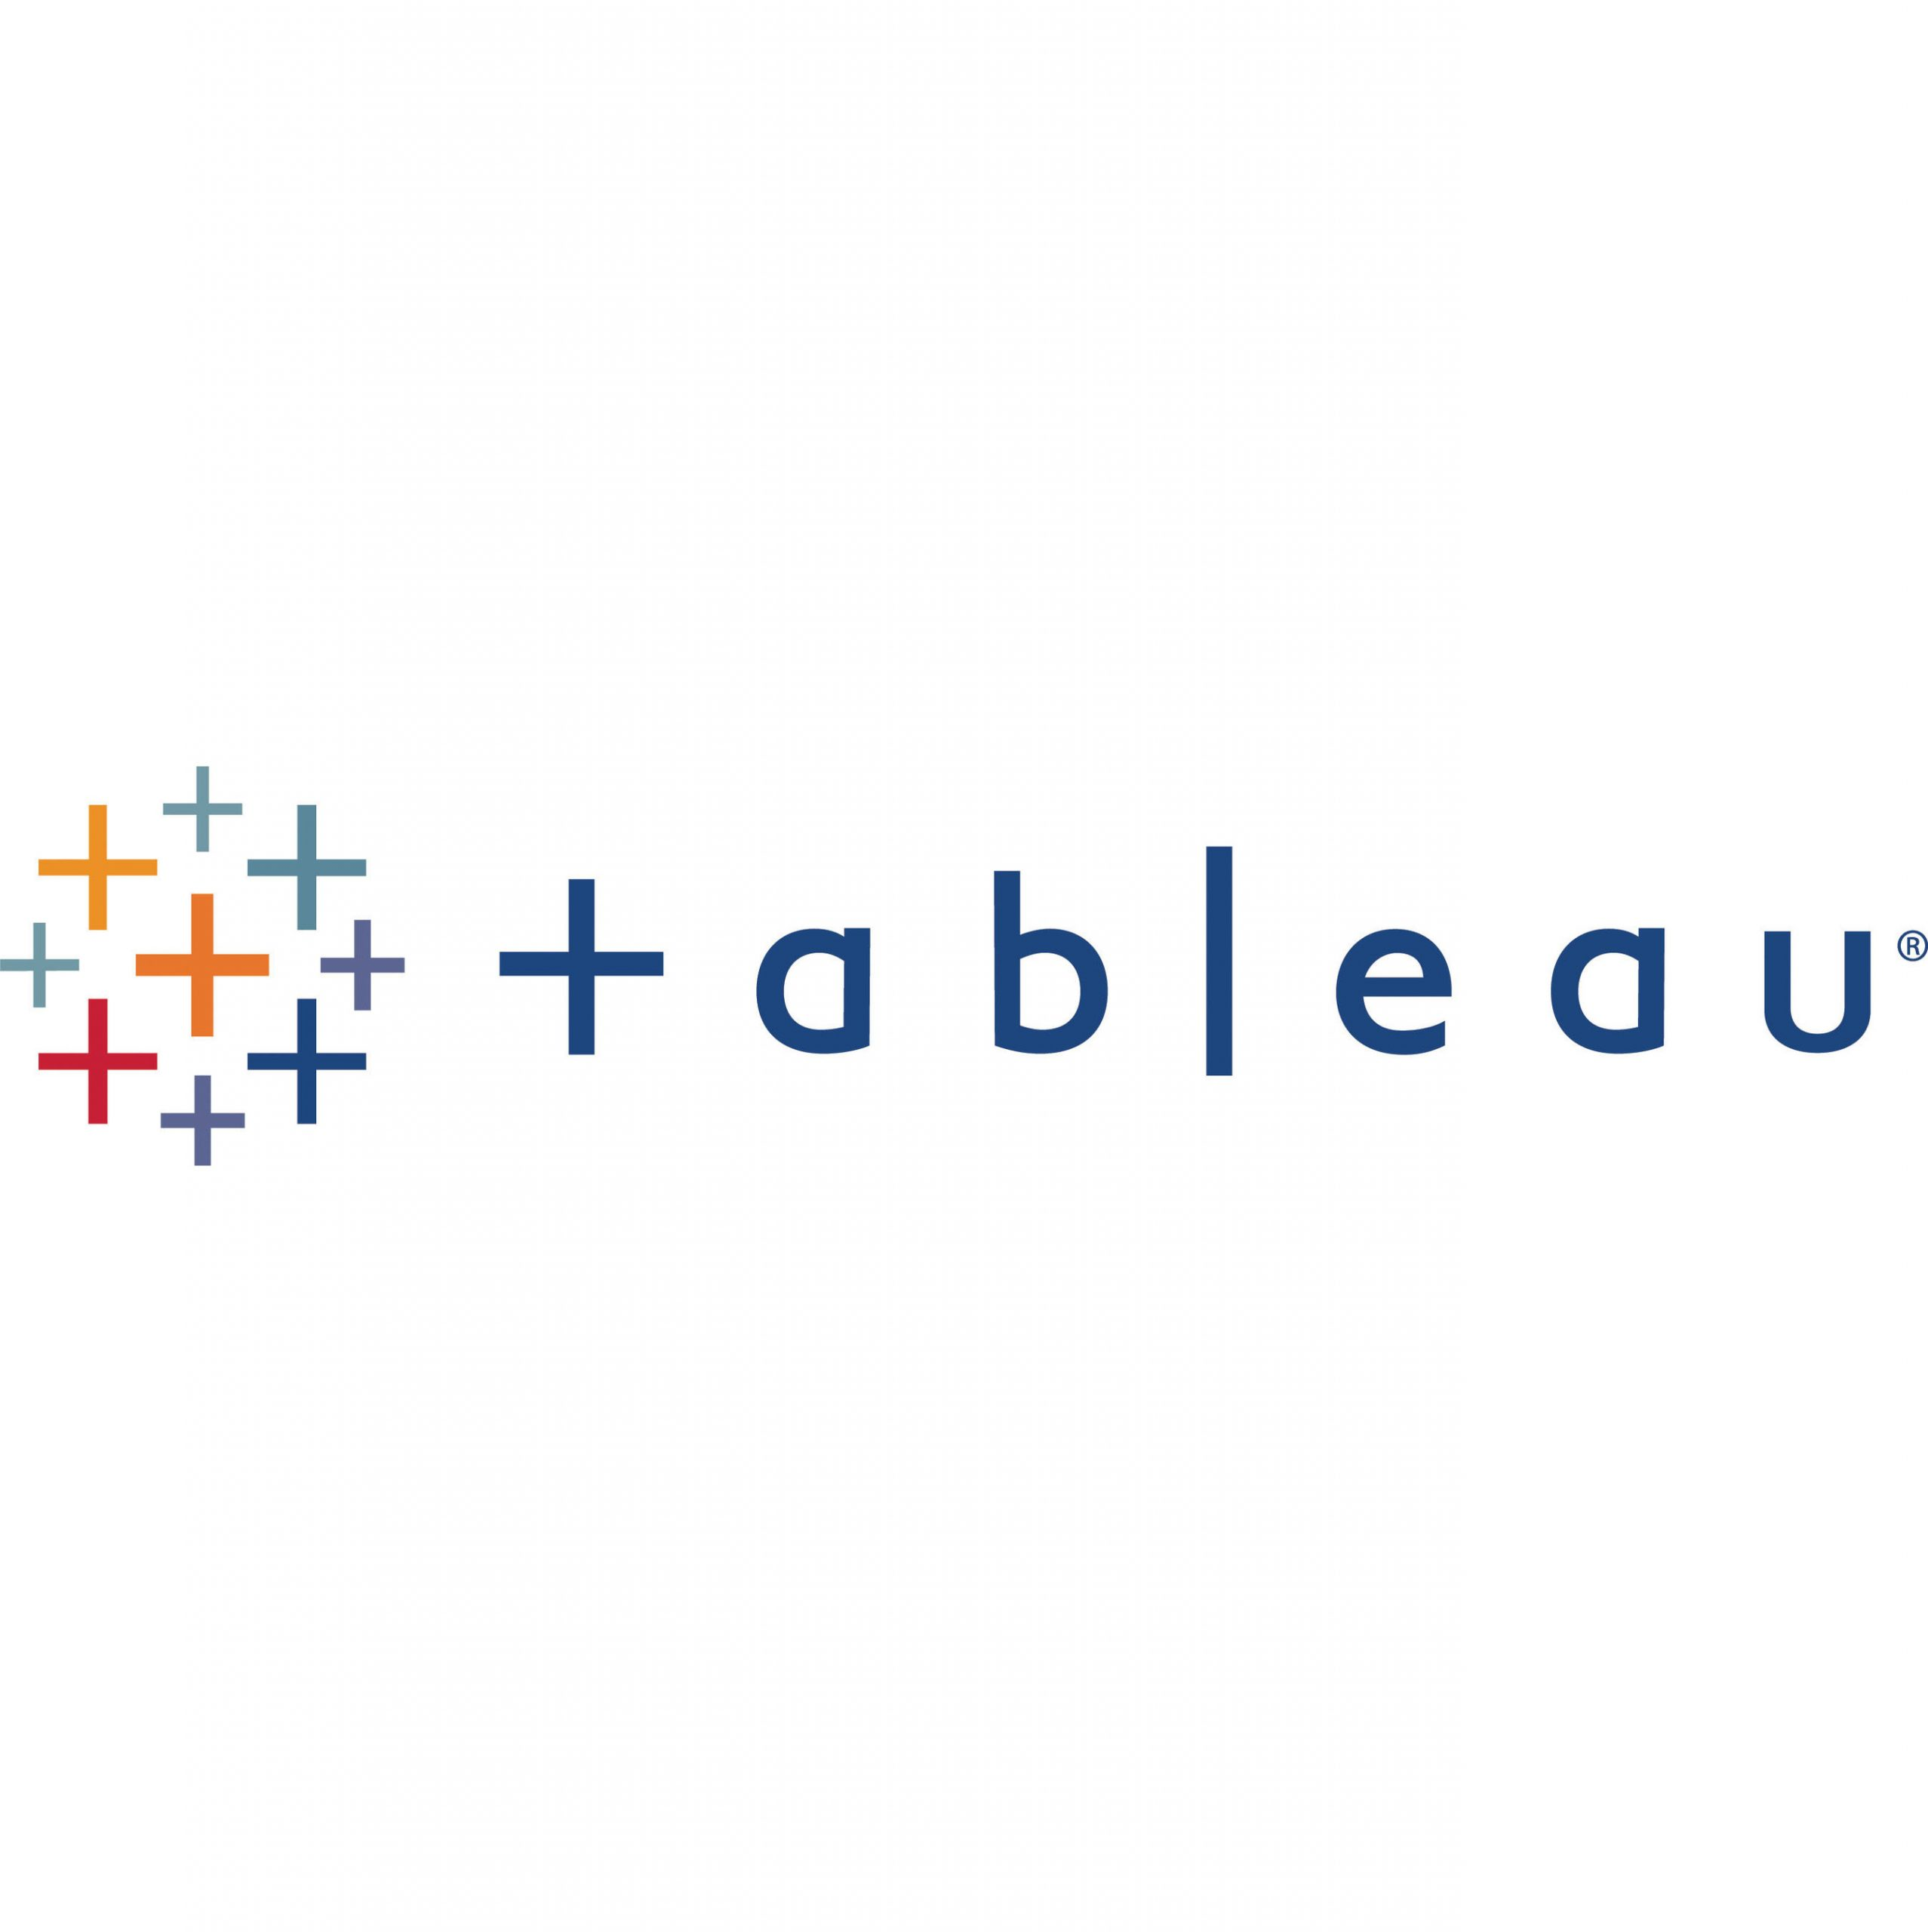 Tableau Software logo www.tableausoftware.com. (PRNewsFoto/Tableau Software) (PRNewsfoto/Tableau Software)